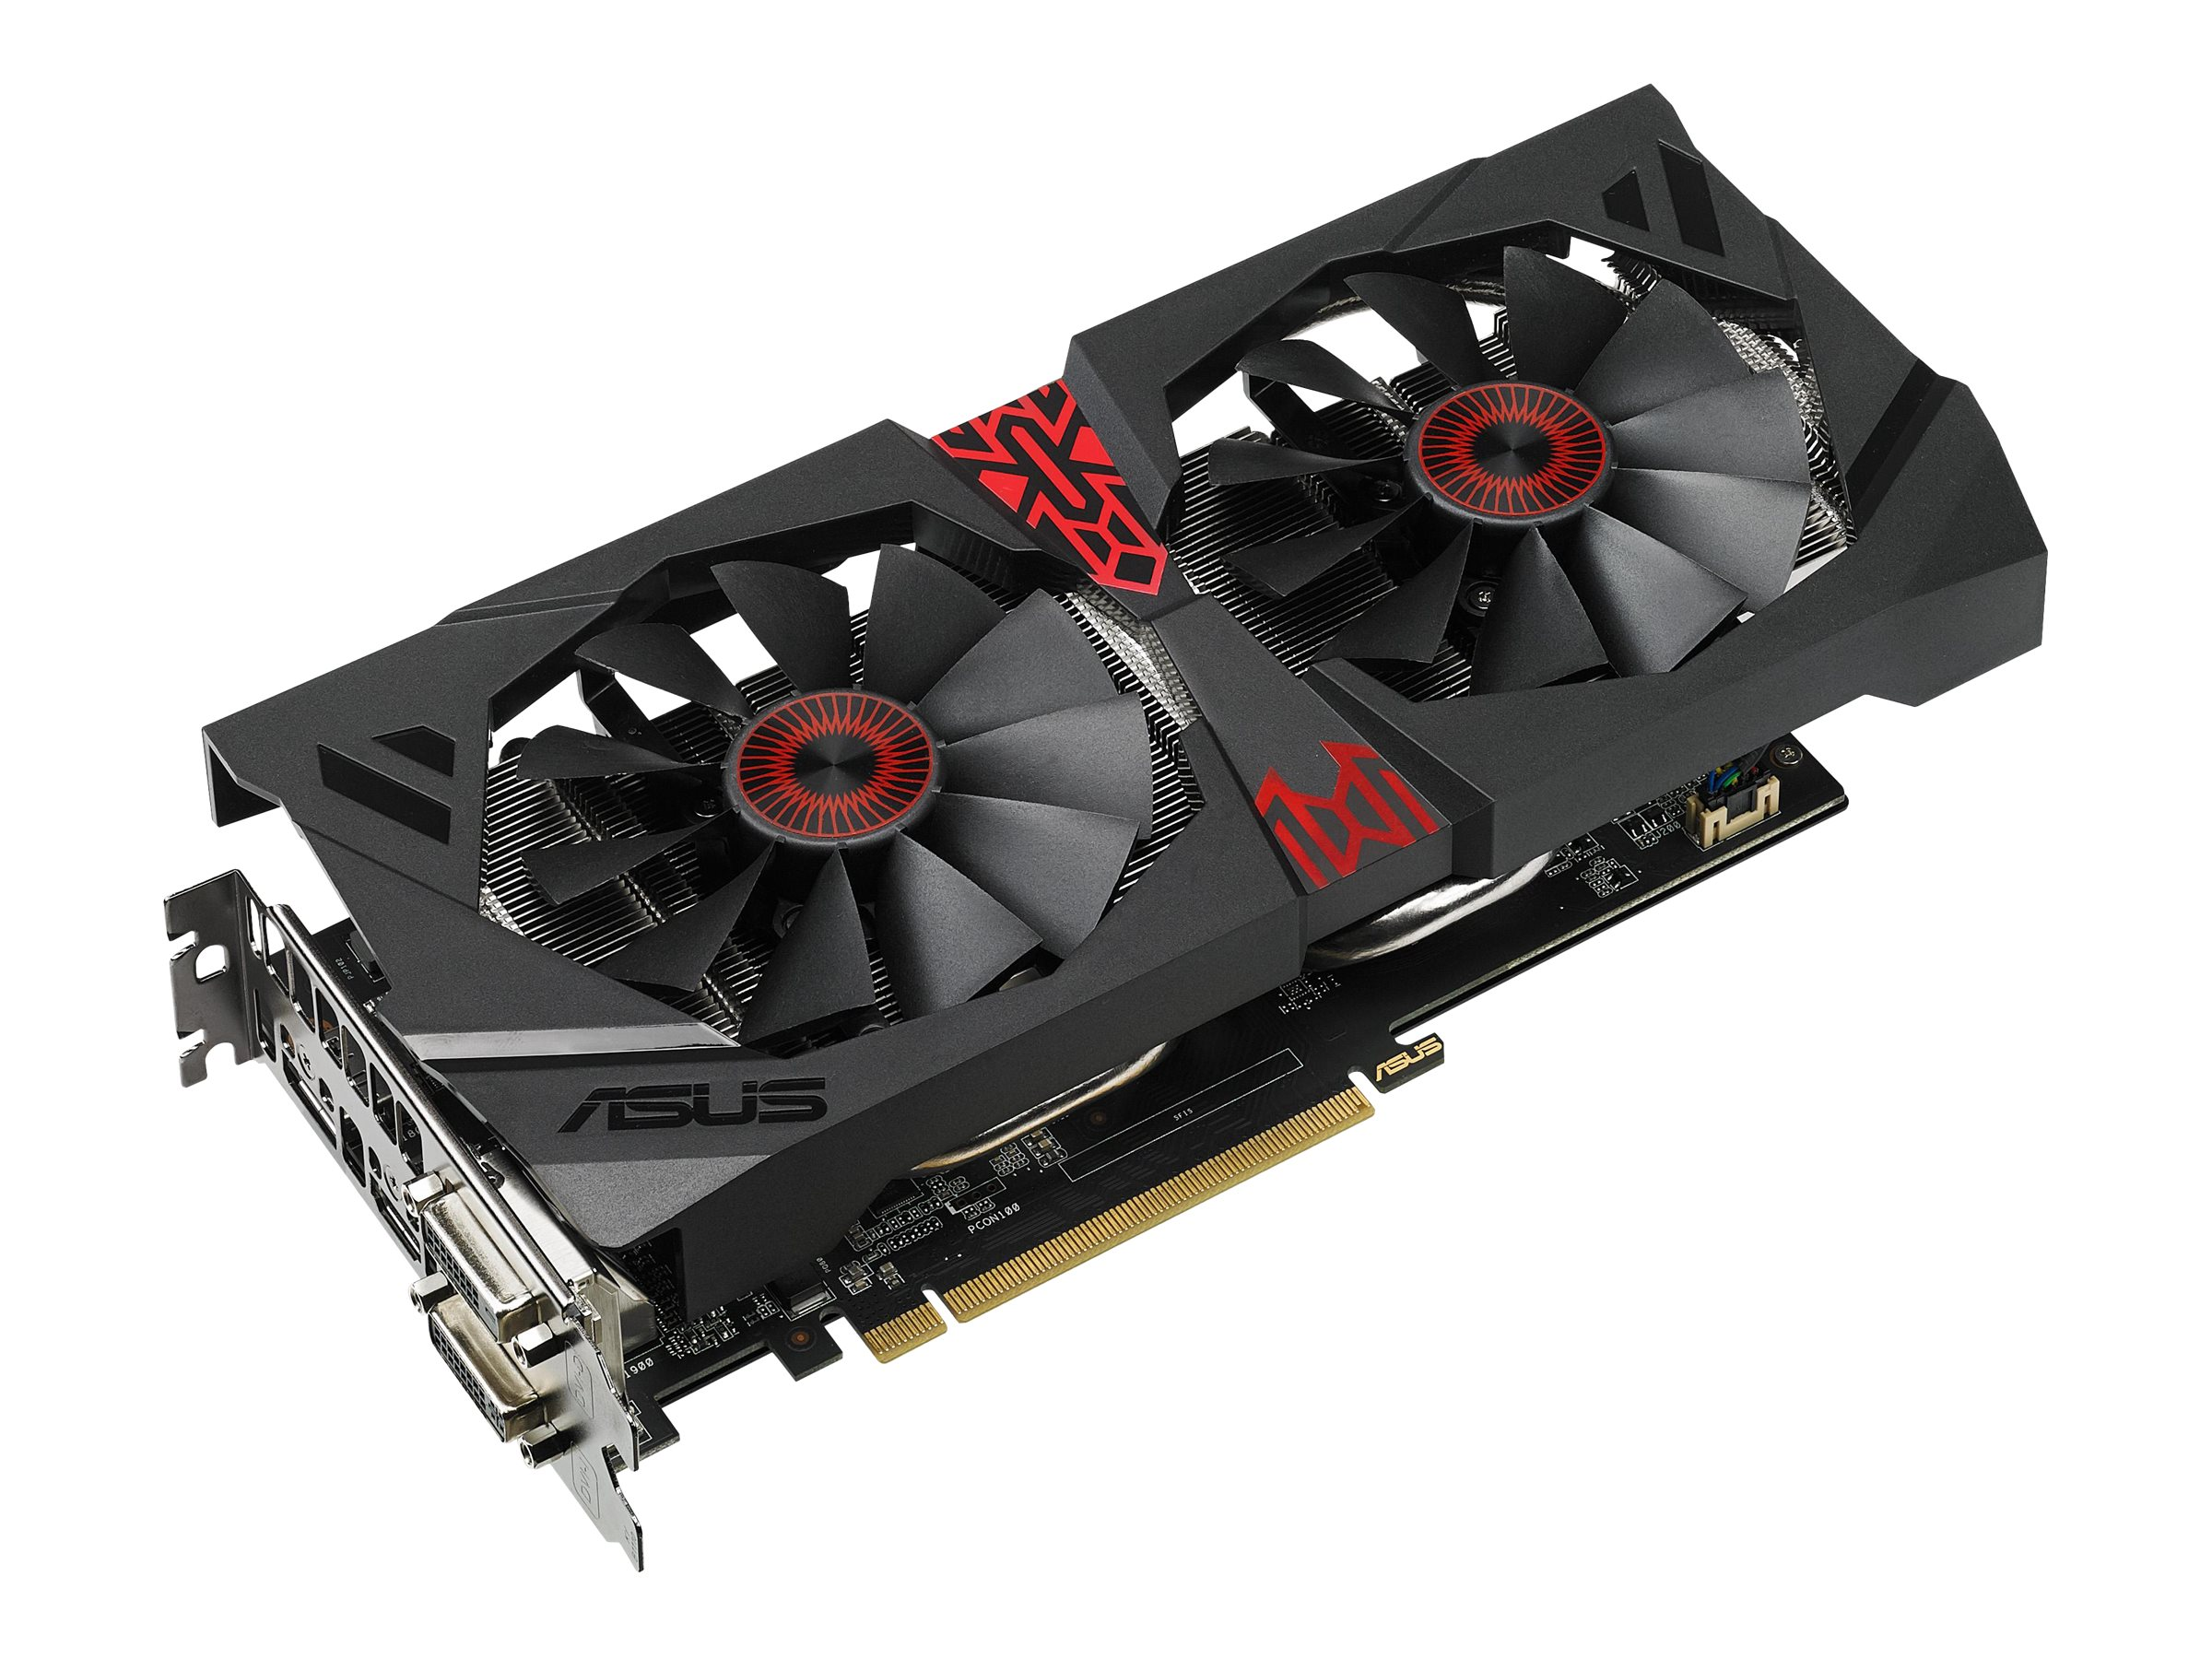 Asus STRIX R9 380 PCIe 3.0 Overclocked Graphics Card, 4GB GDDR5, STRIXR9380DC2OC4GD5G